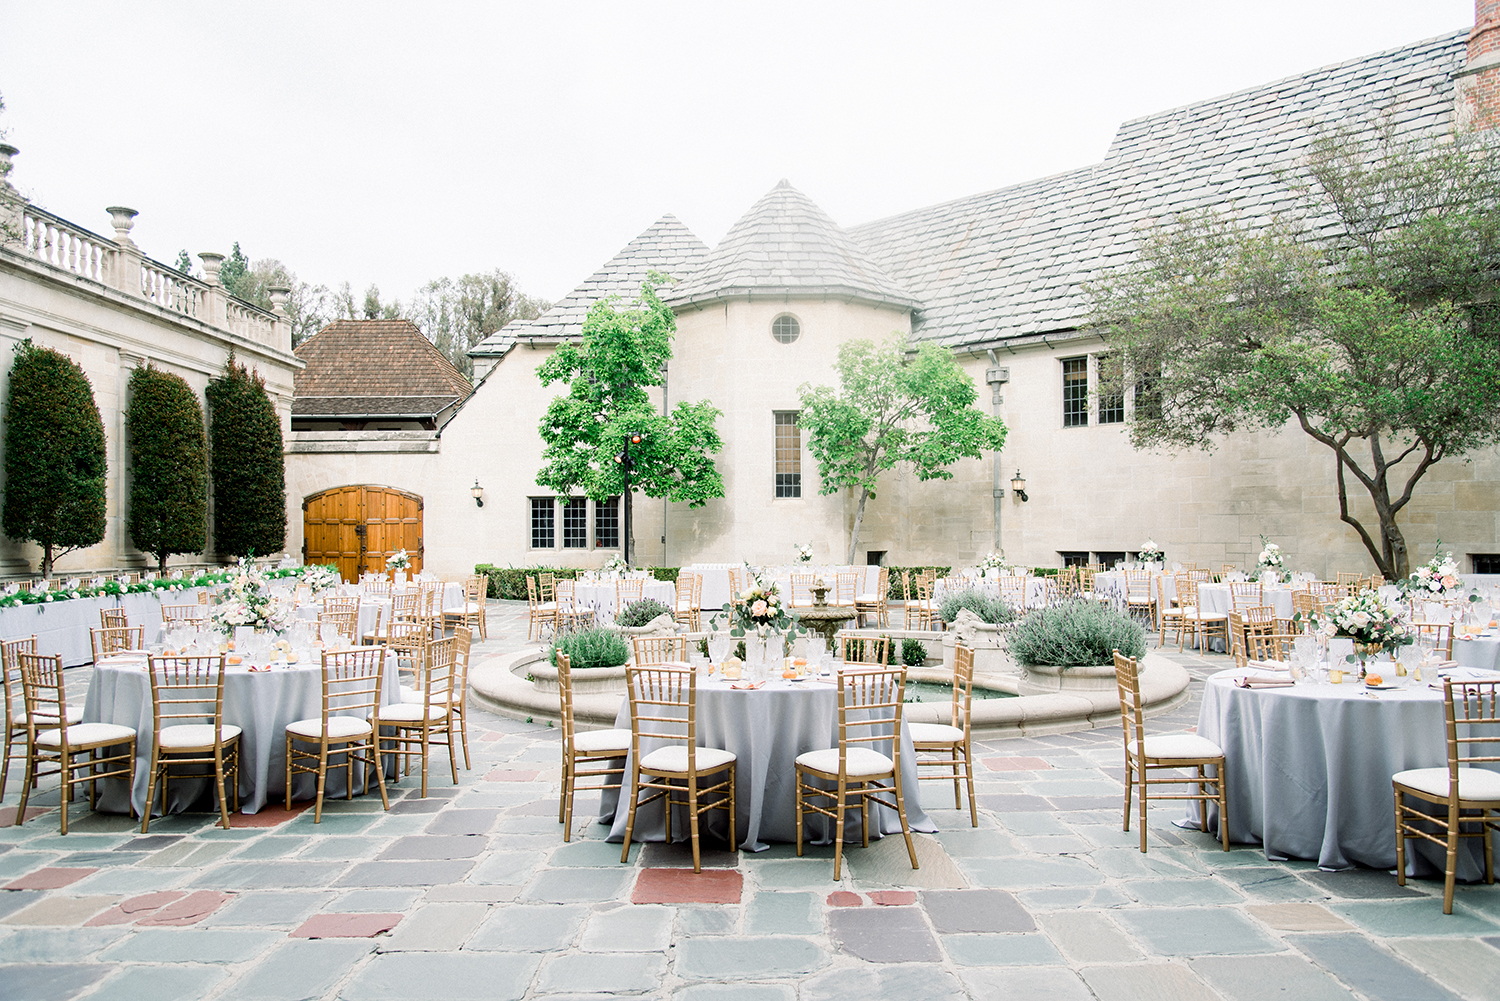 Classic Cinderella wedding at the Greystone Mansion